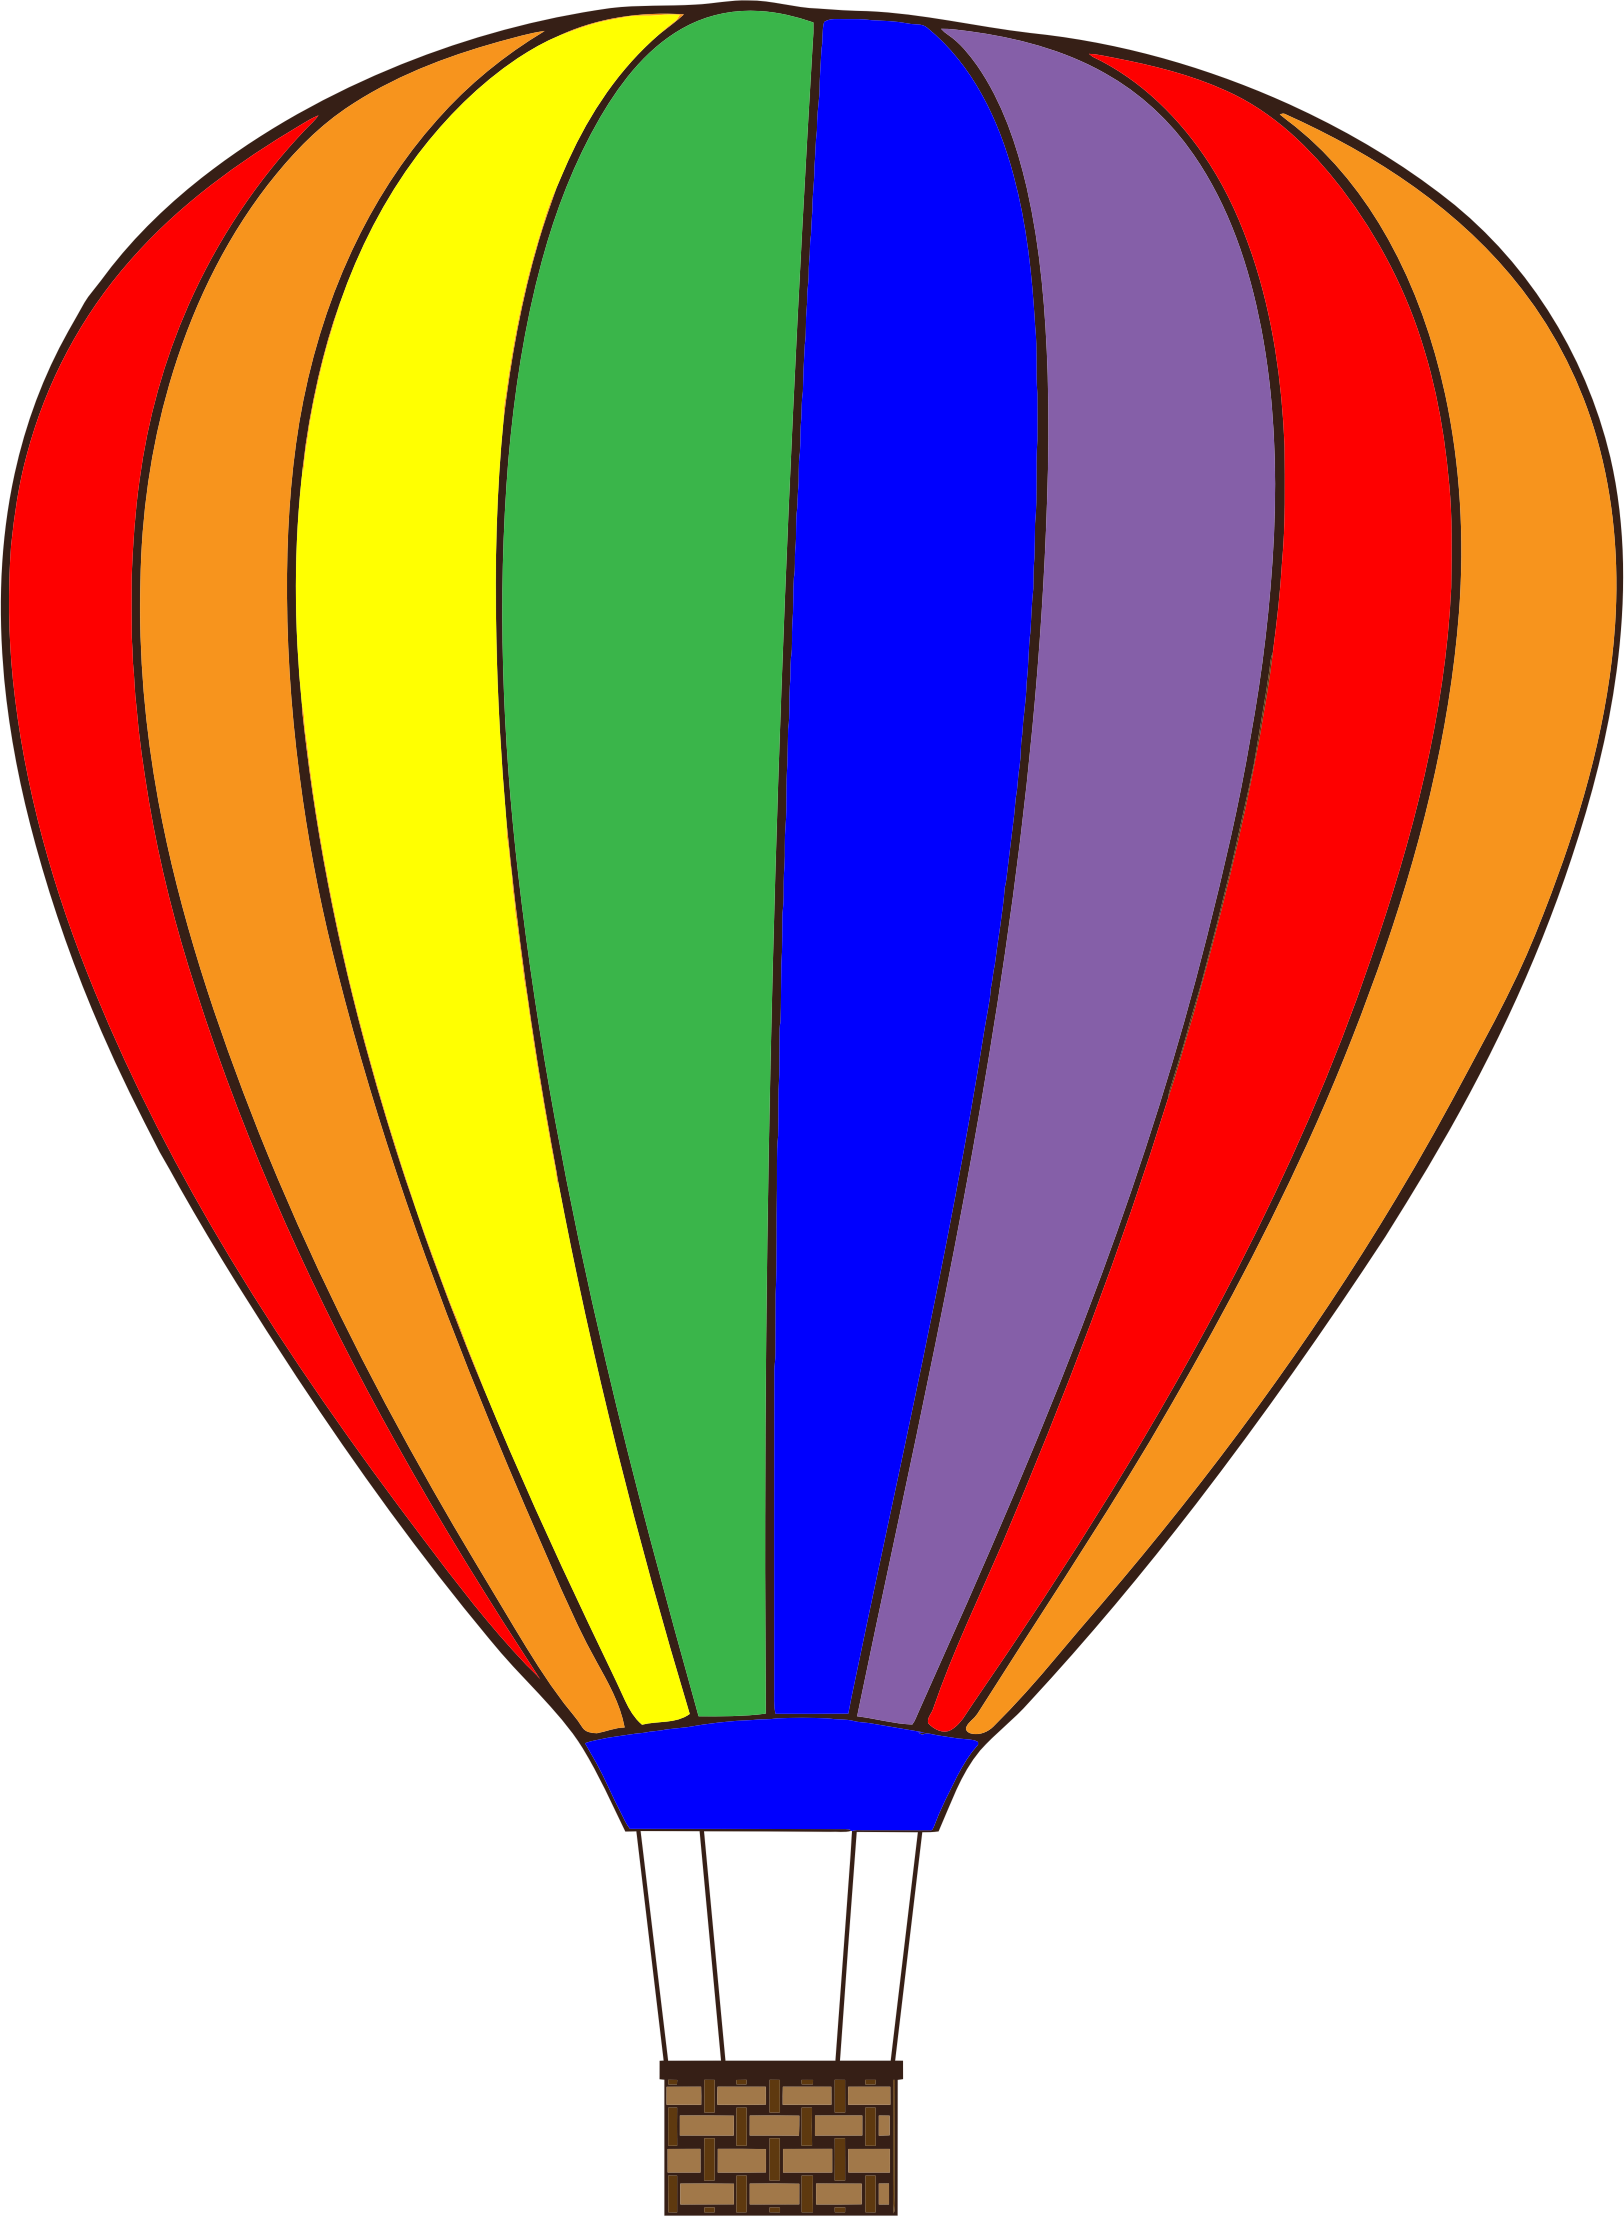 Hot air balloon clip art png. Clipart colorful svg files